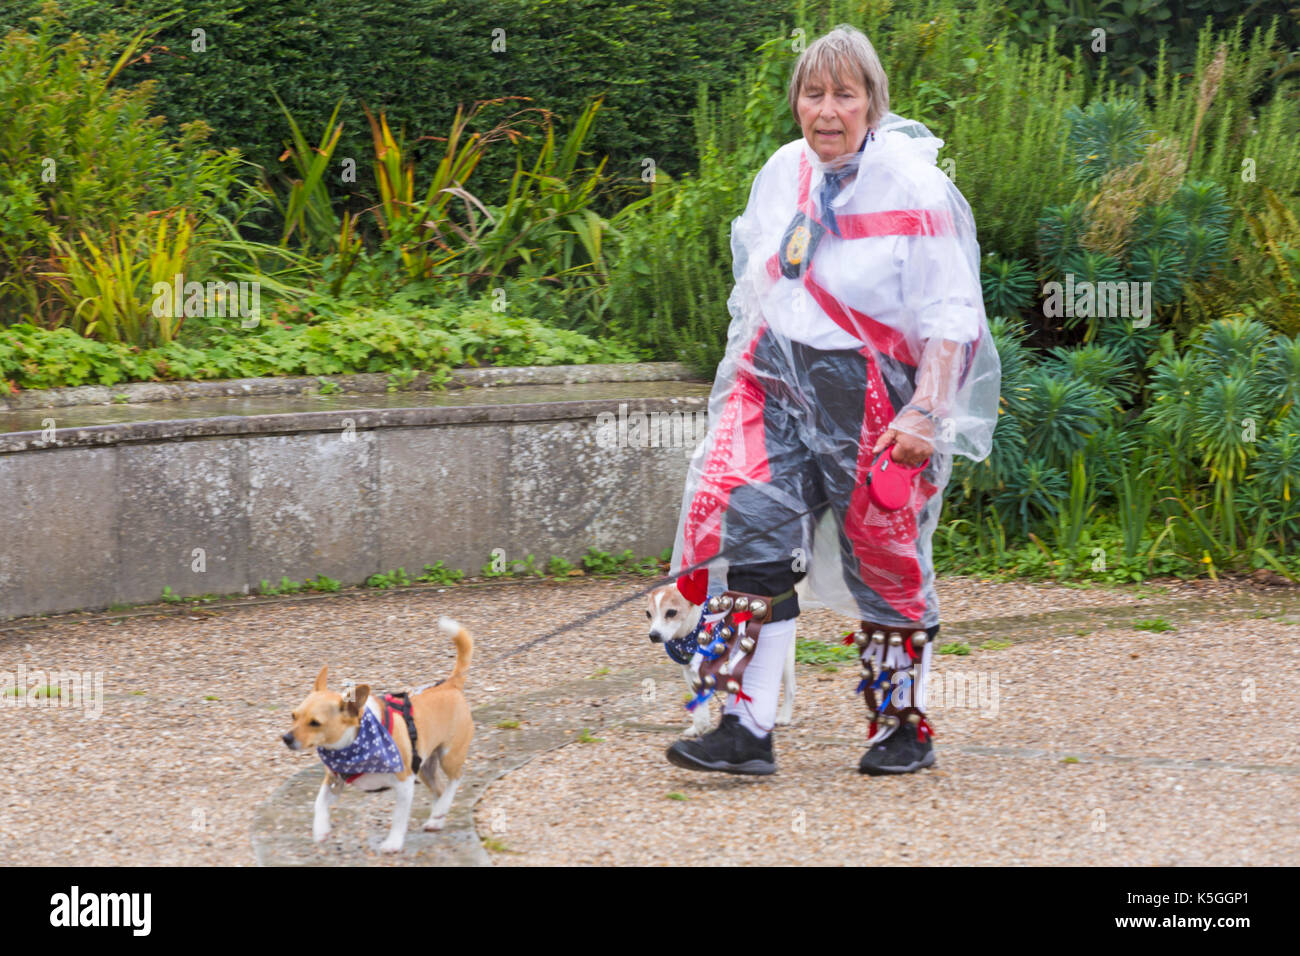 Swanage, Dorset, UK. 9th Sep, 2017. UK weather: heavy rain and thunder at Swanage. Female Morris dancer walking dogs wearing transparent poncho for protection from the rain. Credit: Carolyn Jenkins/Alamy Live News - Stock Image